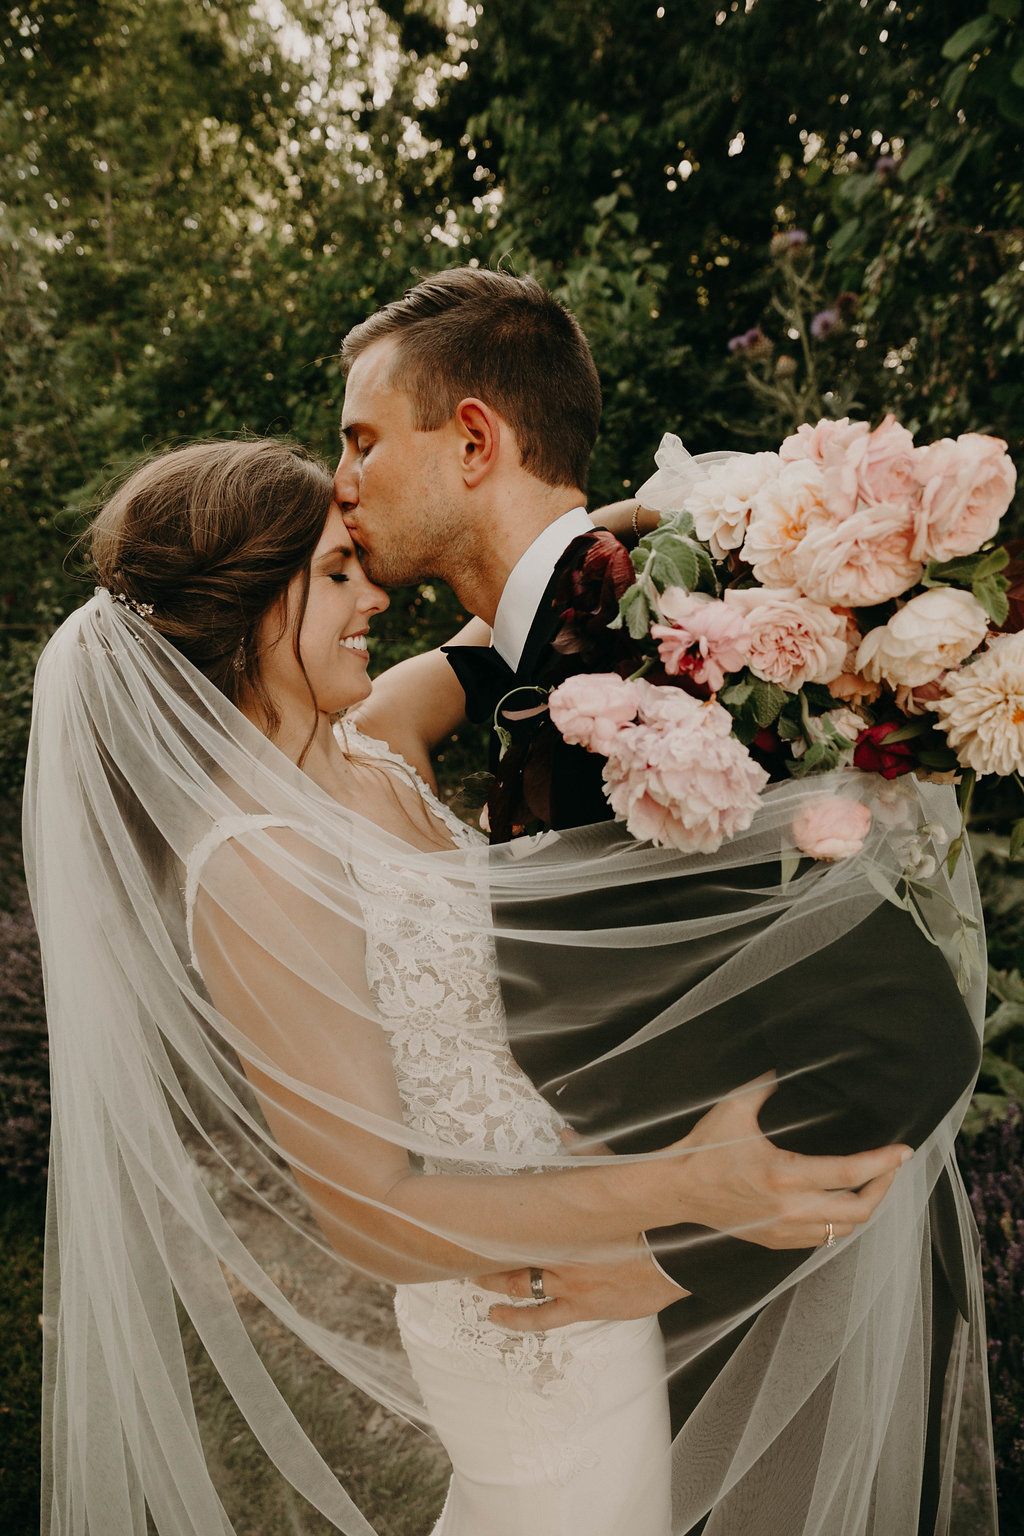 Groom Kissing her Bride on Forehead